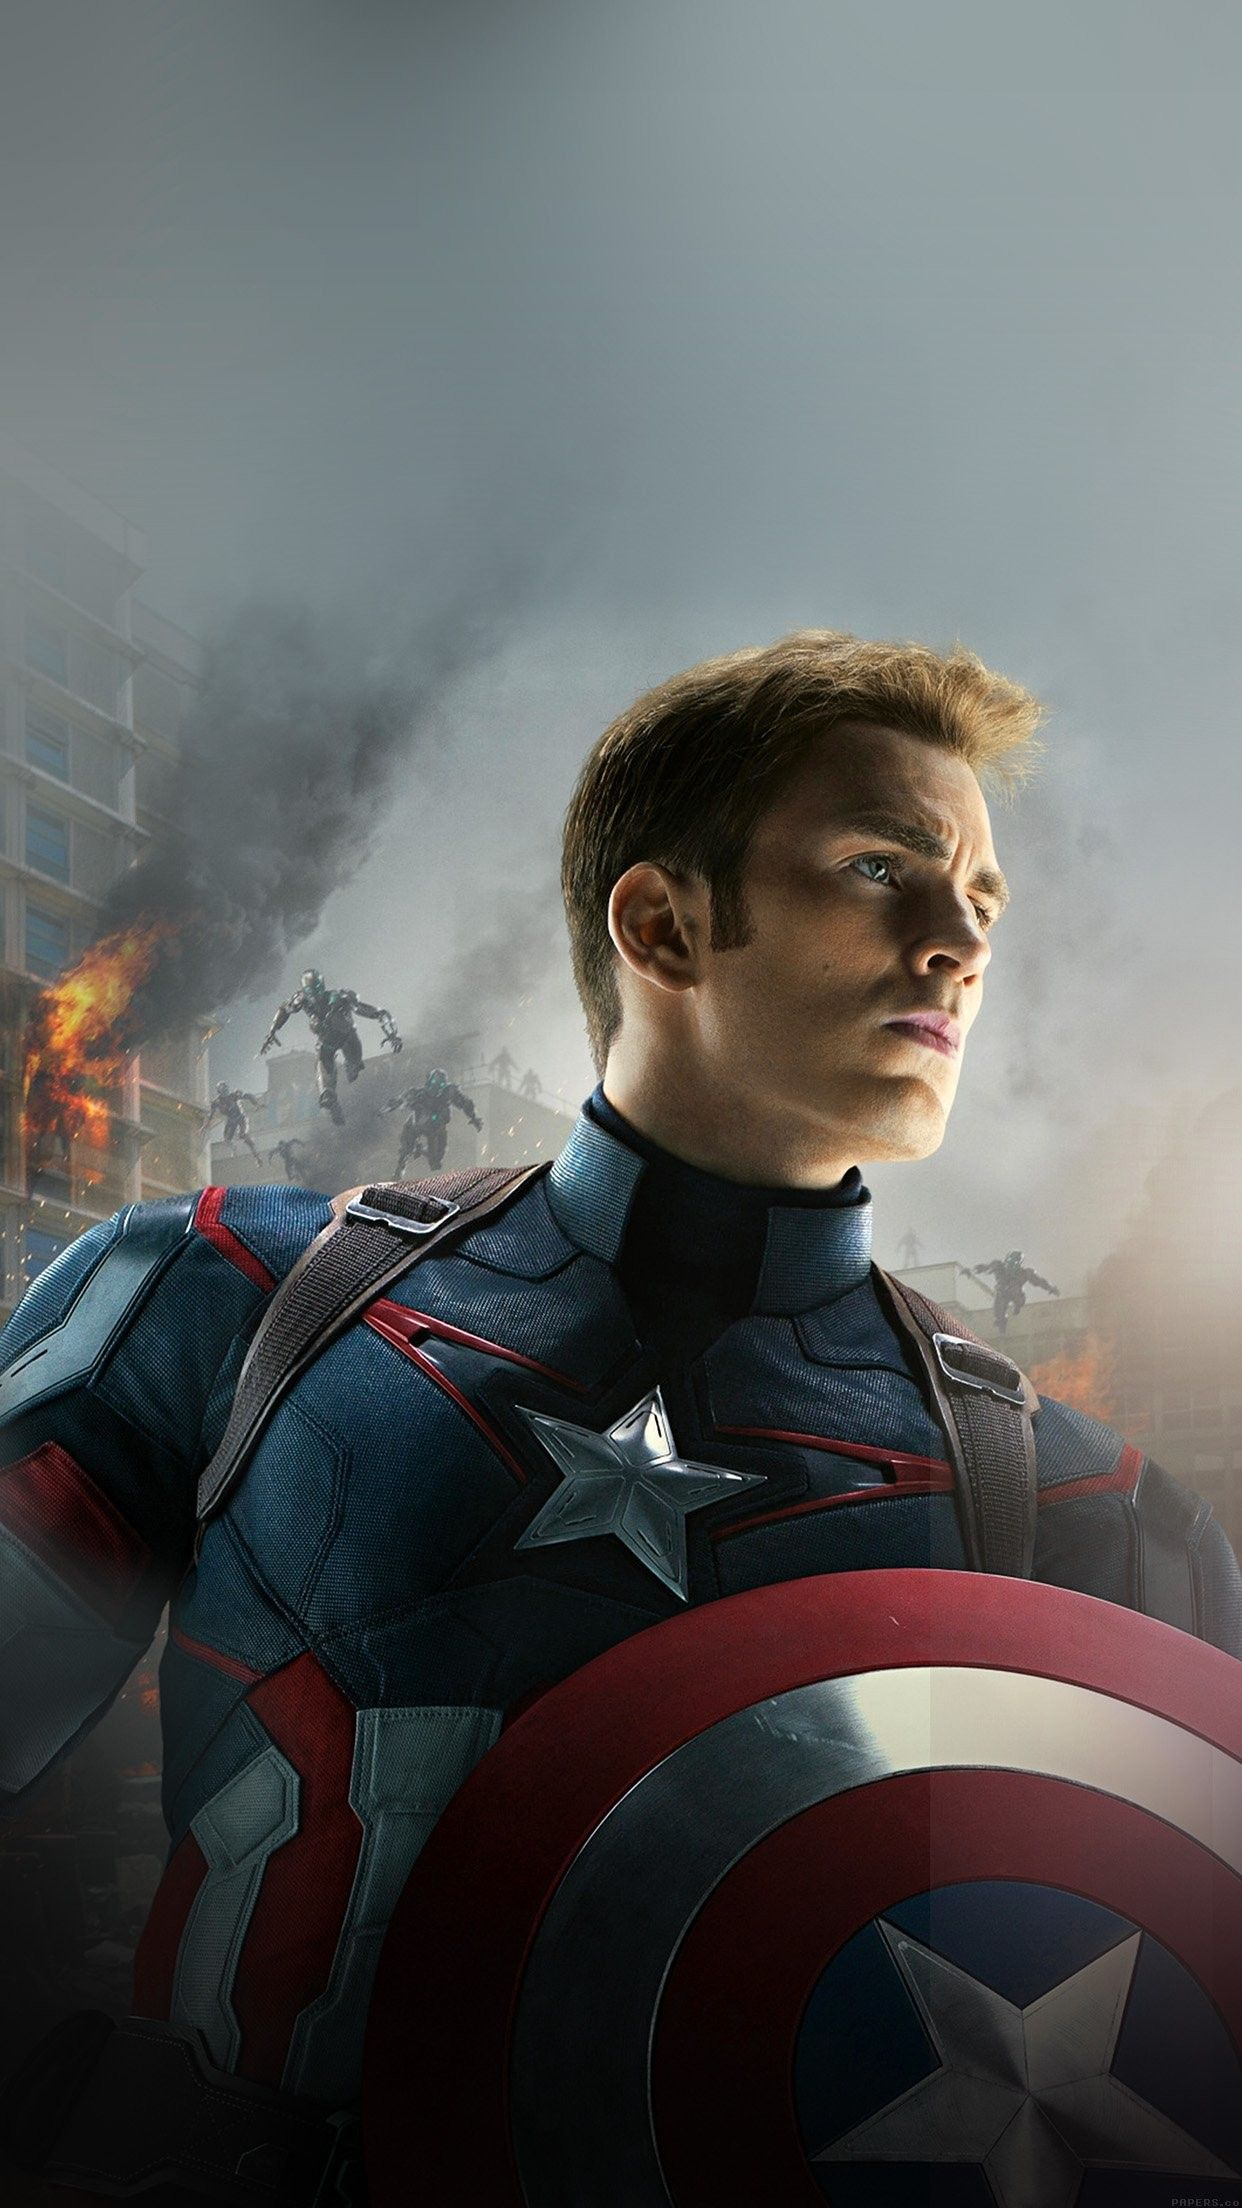 Marvel Wallpaper for iPhone from